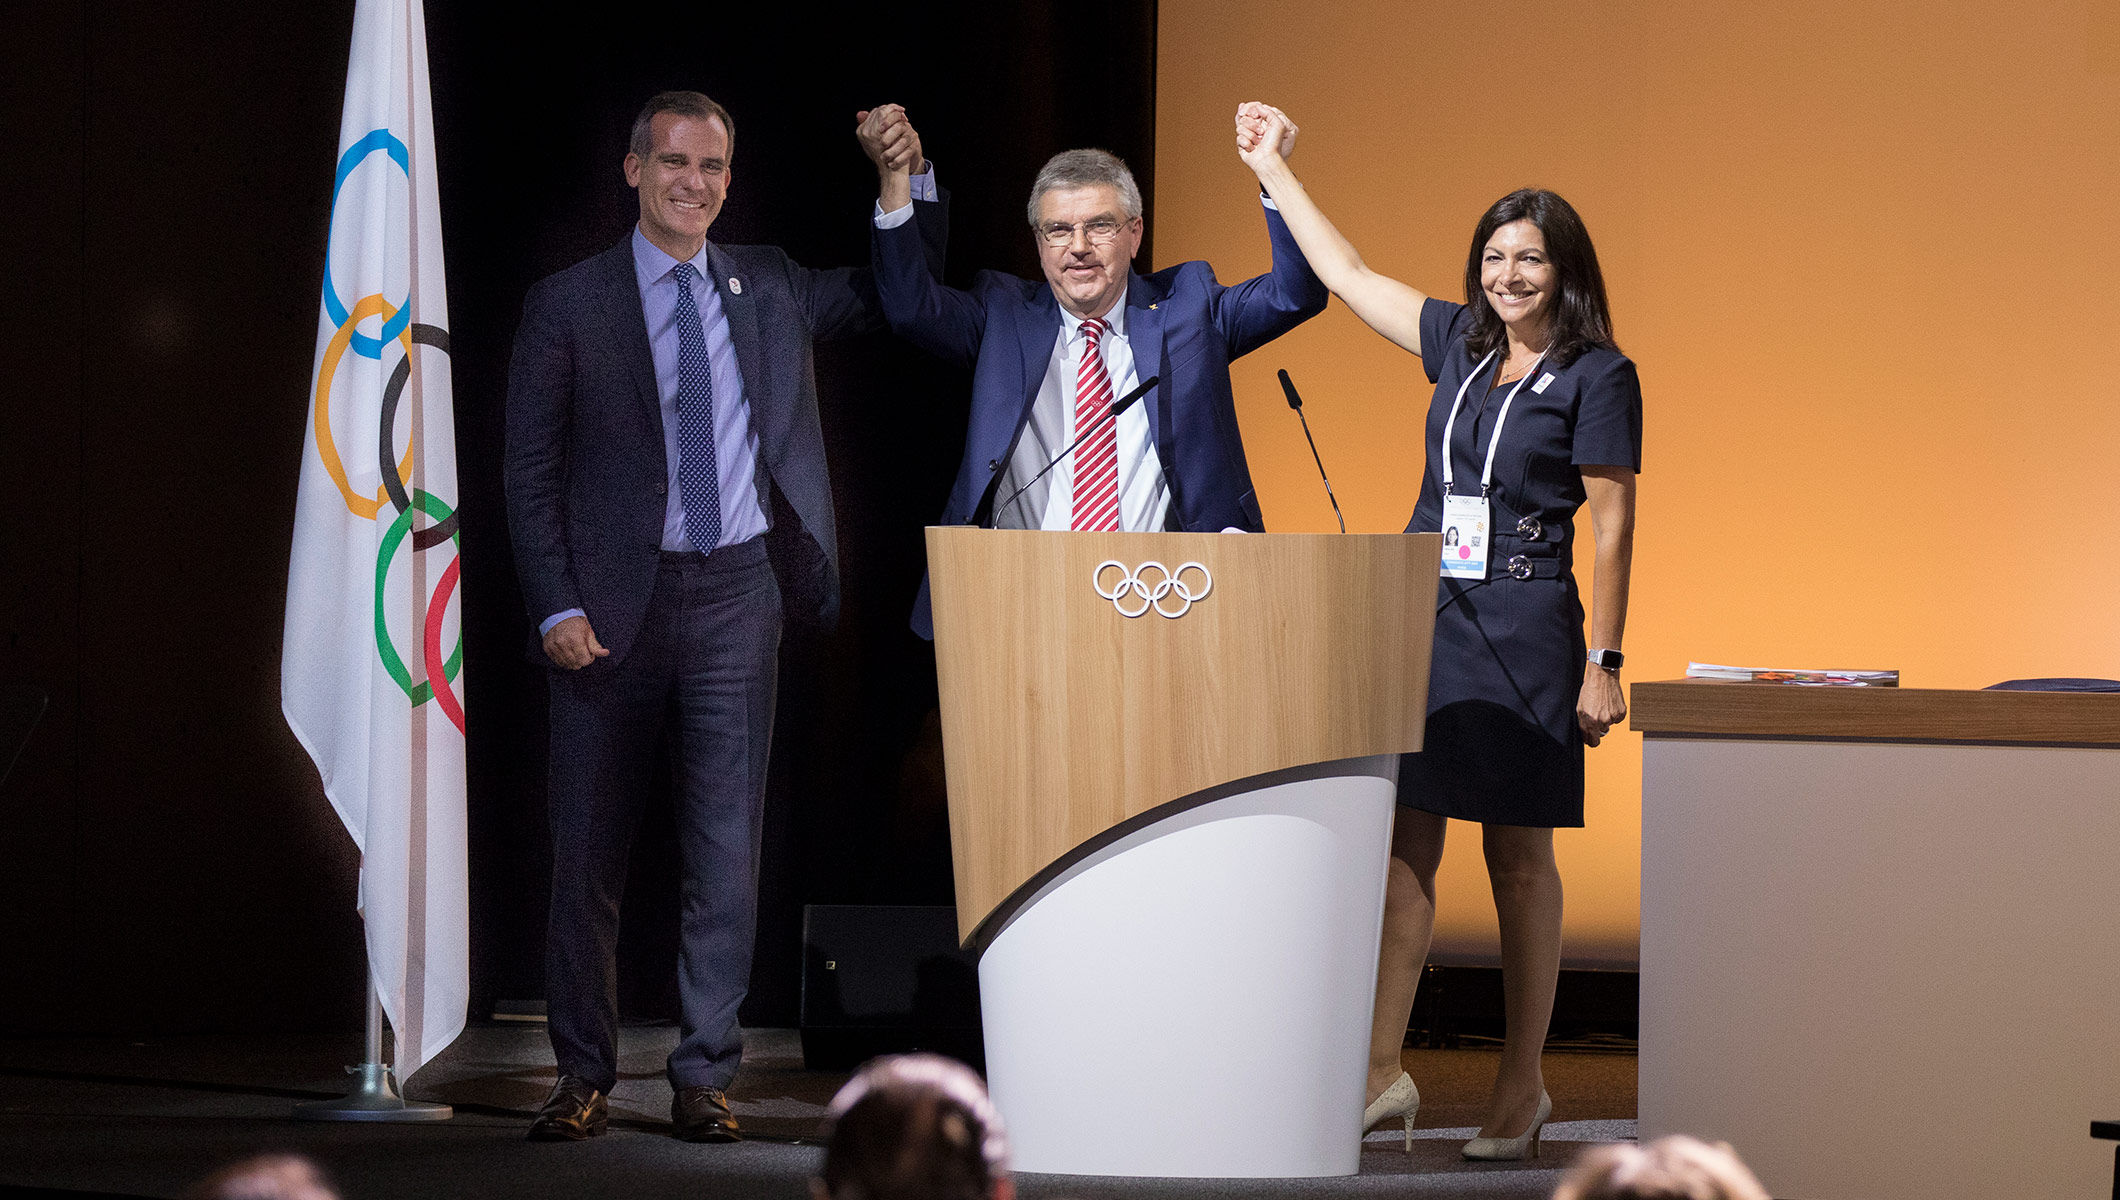 IOC makes historic decision in agreeing to award 2024 and 2028 Olympic Games at the same time